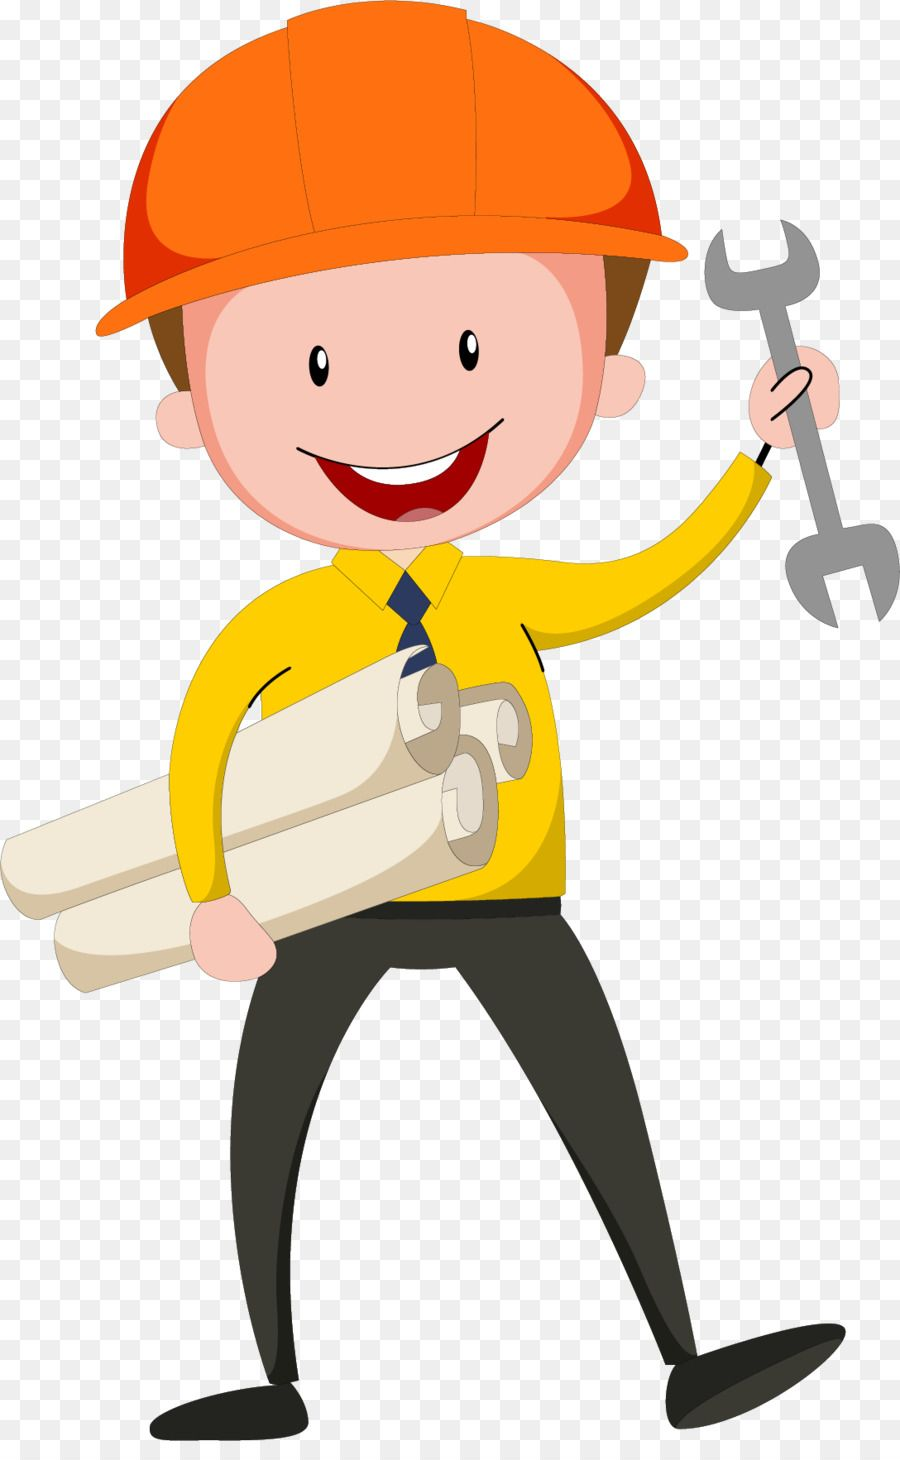 Civil engineering clipart free library Civil Engineering Design Engineer - Wearing a helmet design engineer ... free library